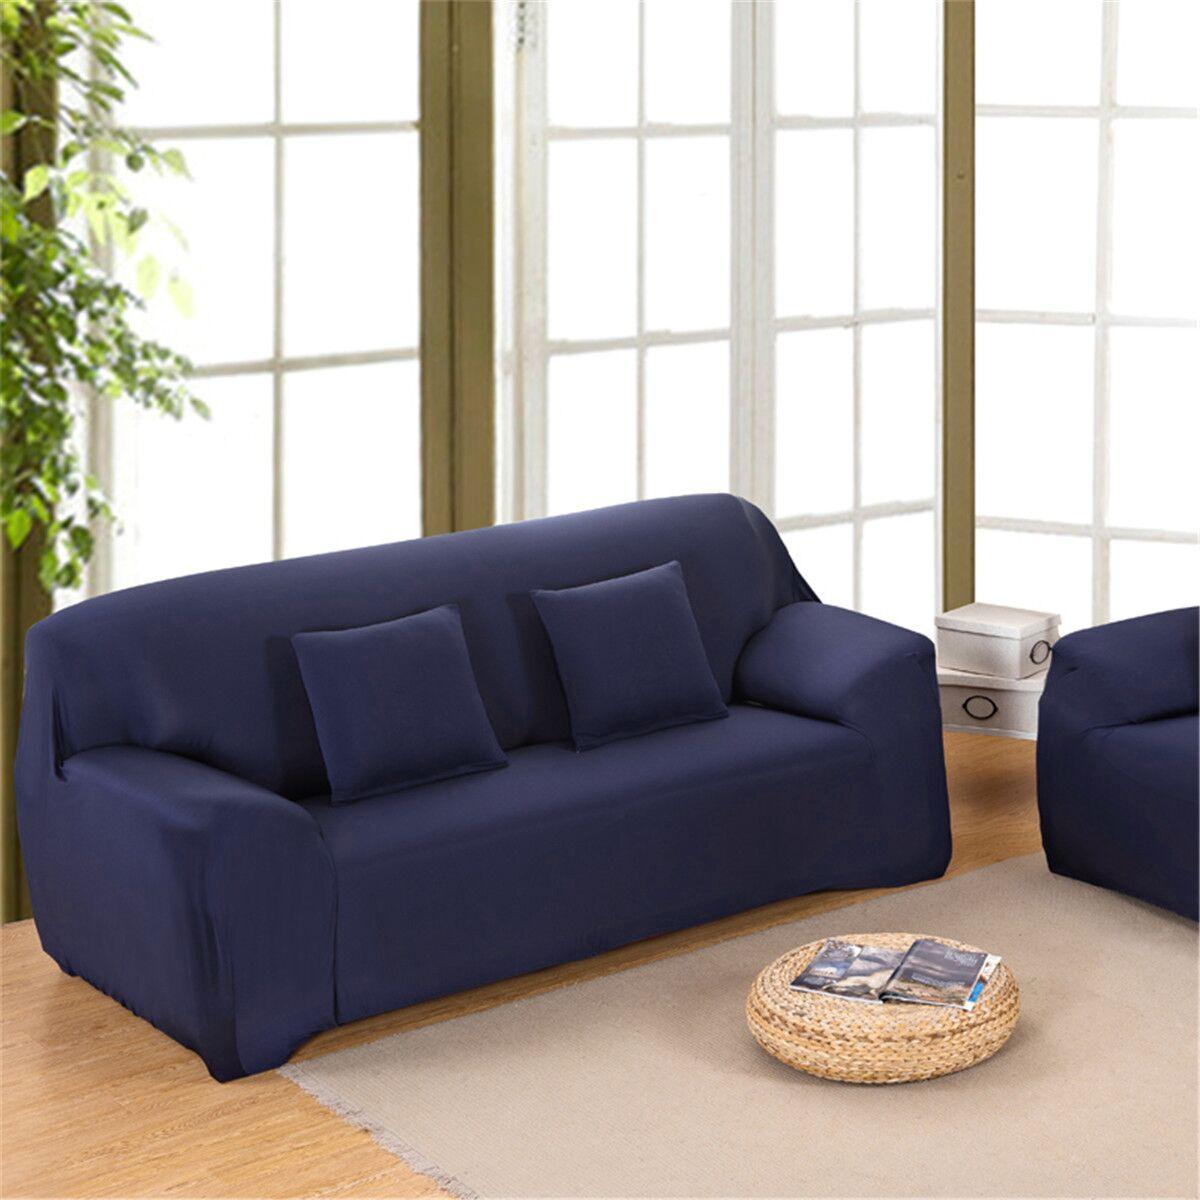 1/2/3/4 Seater Sofa Slipcover Stretch Protector Soft Couch Cover Washable  Easy Fit #2 Seaters